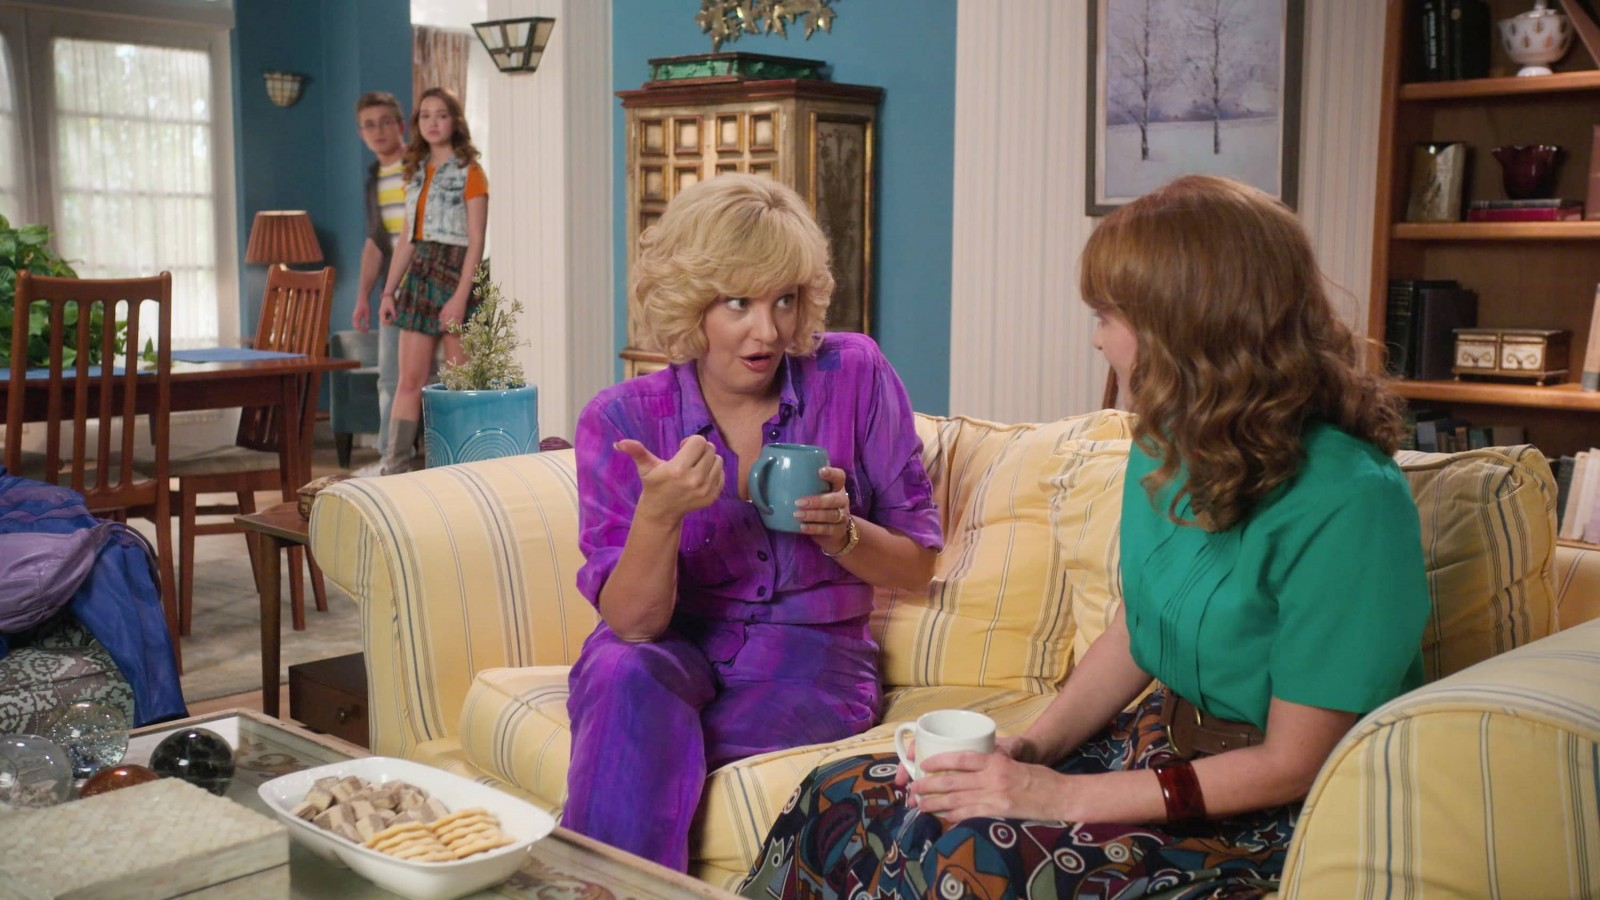 THE GOLDBERGS - ÒDee-VorcedÓ Ð BeverlyÕs meddling in AdamÕs relationship with Brea leads to a confrontation with her divorced mother, Vicki. Meanwhile, Barry struggles to reunite the JTP following his breakup with Ren on an all-new episode of ÒThe Goldbergs,Ó WEDNESDAY, NOV. 18 (8:00-8:30 p.m. EST), on ABC. (ABC) WENDI MCLENDON-COVEY